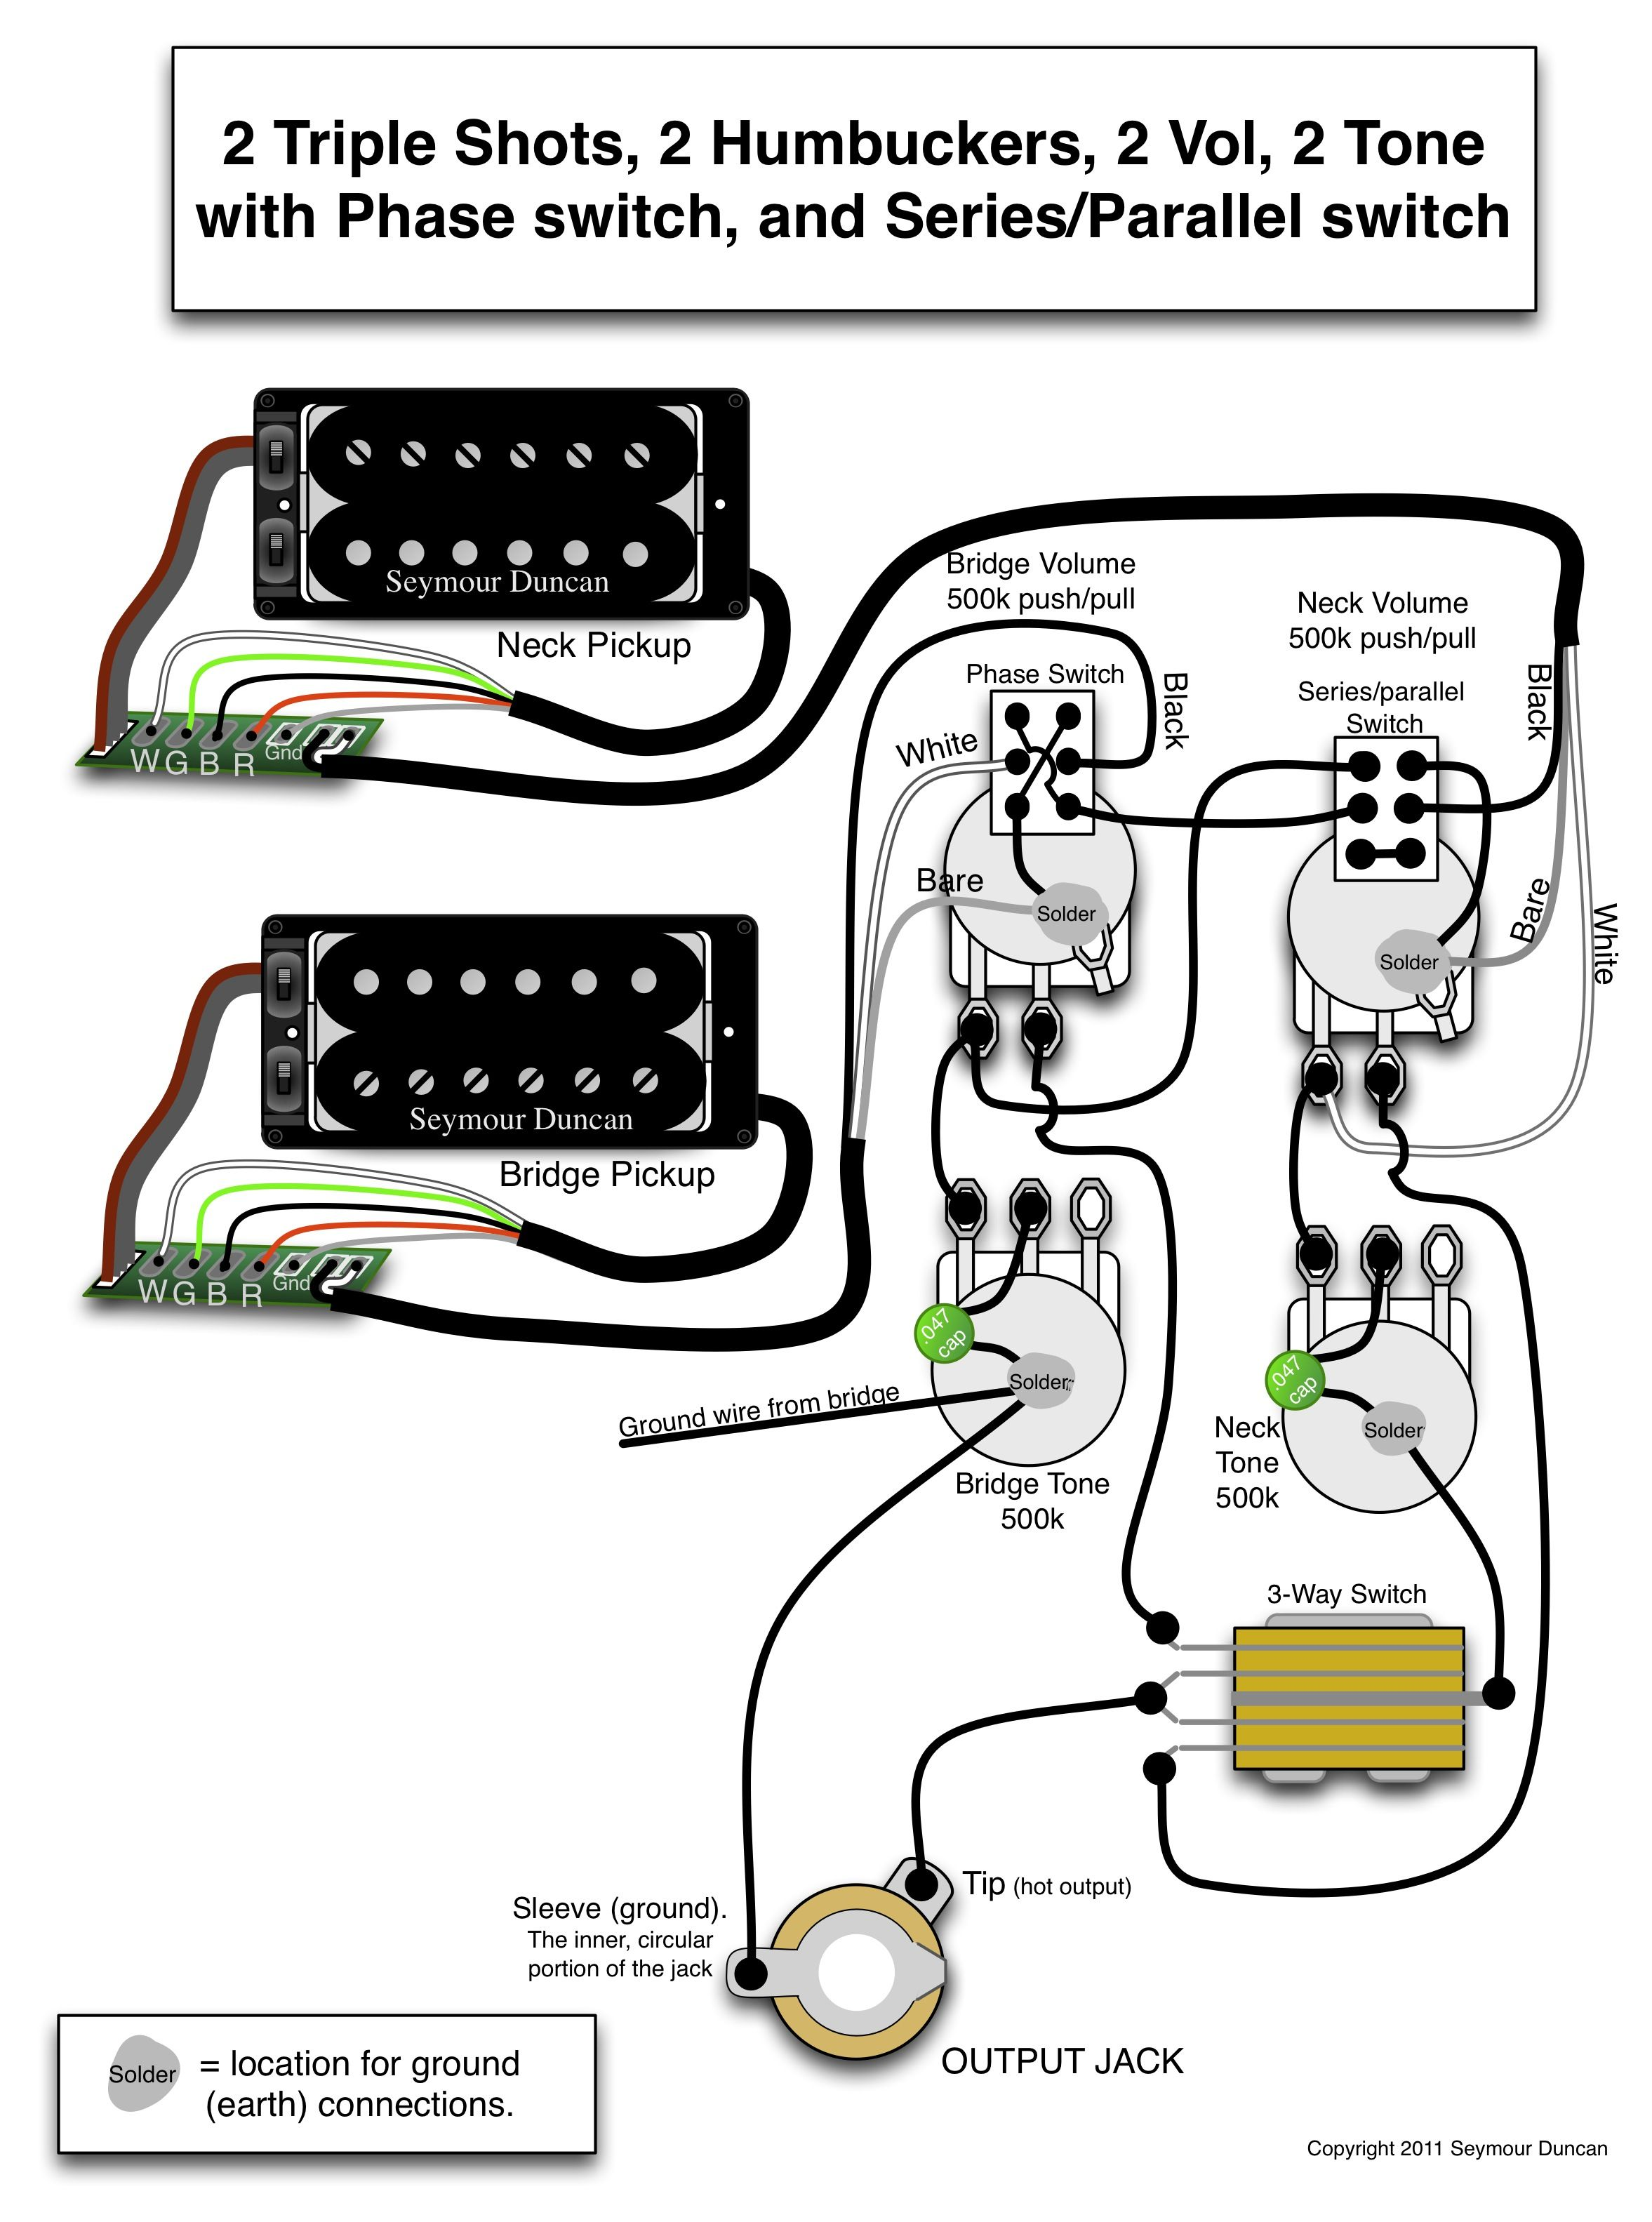 wiring diagram 2 humbucker volume 1 tone seymour duncan wiring diagram - 2 triple shots, 2 ... 1 volume 1 tone 2 humbucking 3 way switch emg wiring diagram